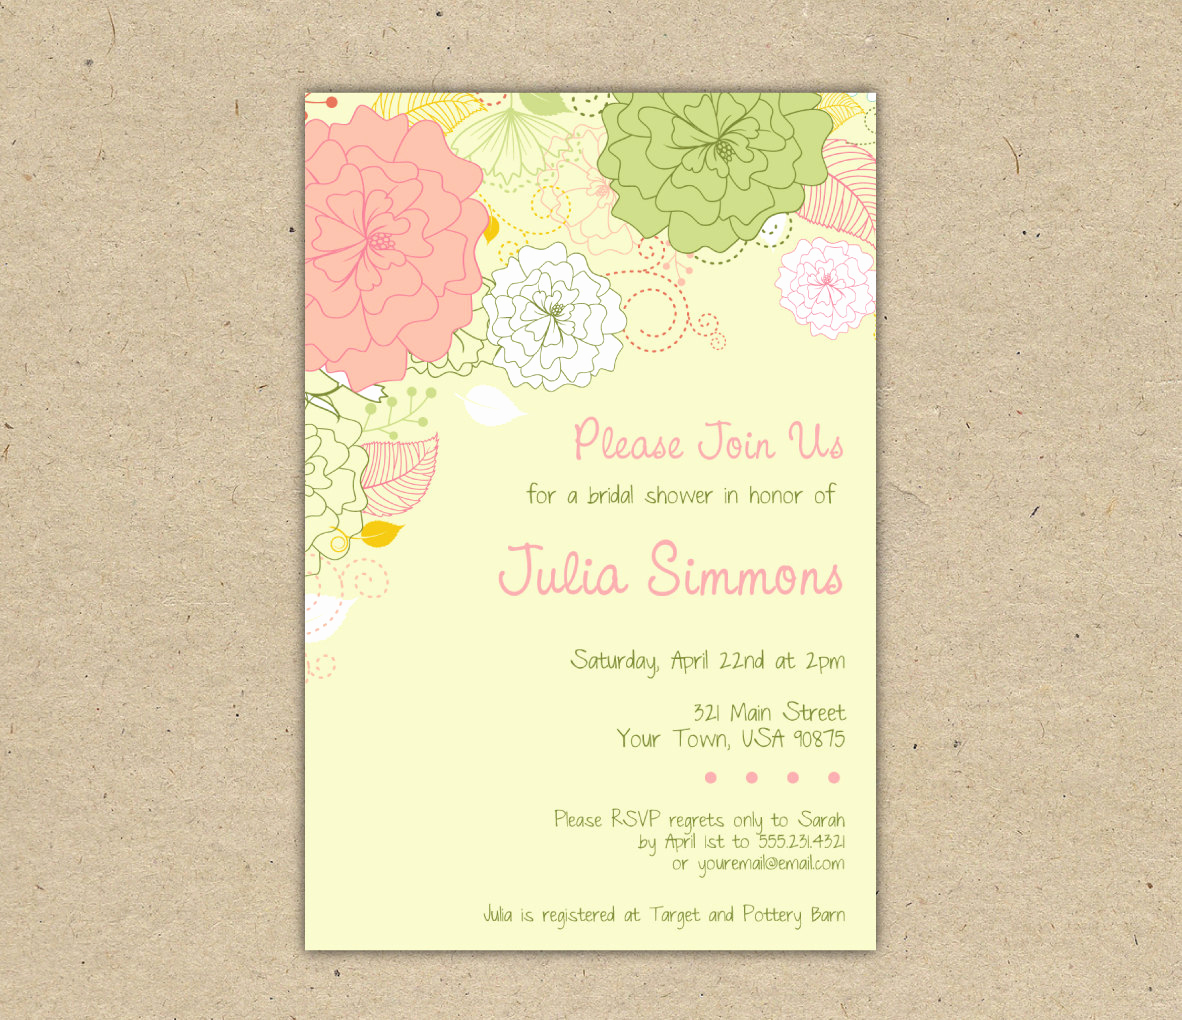 Bridal Shower Invitation Template Free Elegant Rustic Bridal Shower Invitation Templates